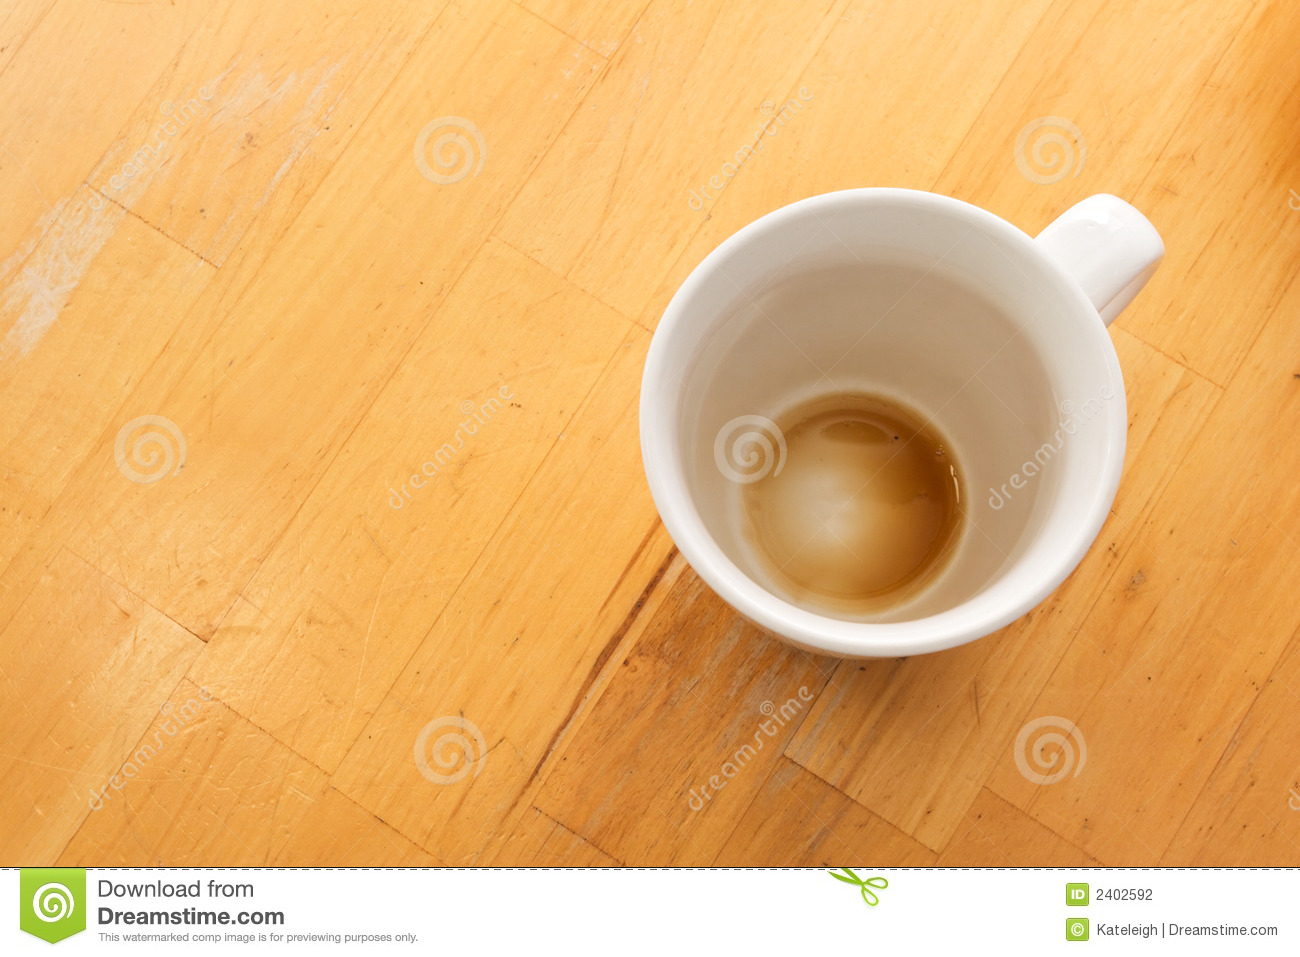 An empty cup of coffee viewed from above on a wooden table.